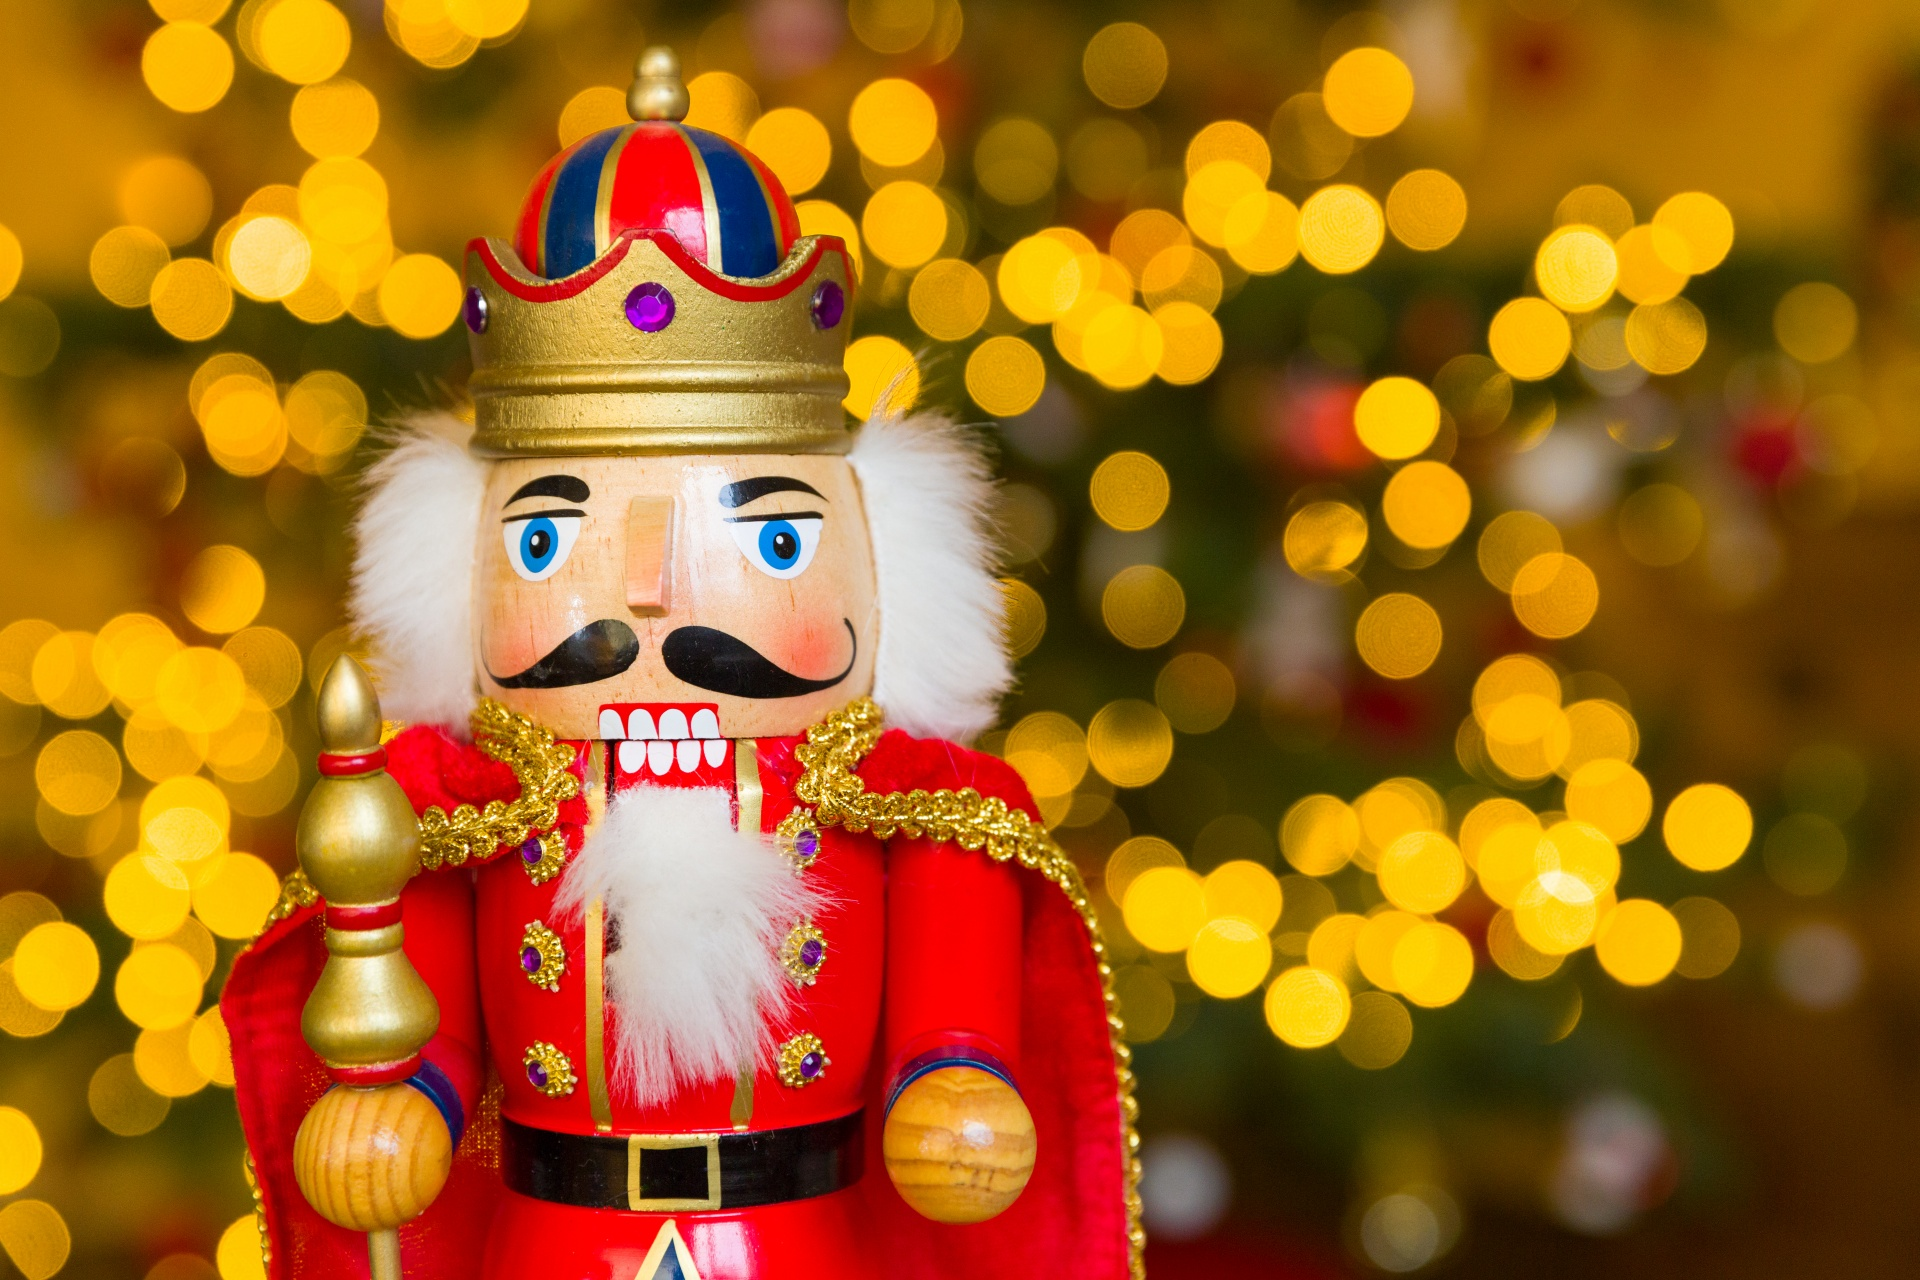 The Nutcracker opens Thursday in Tuscaloosa